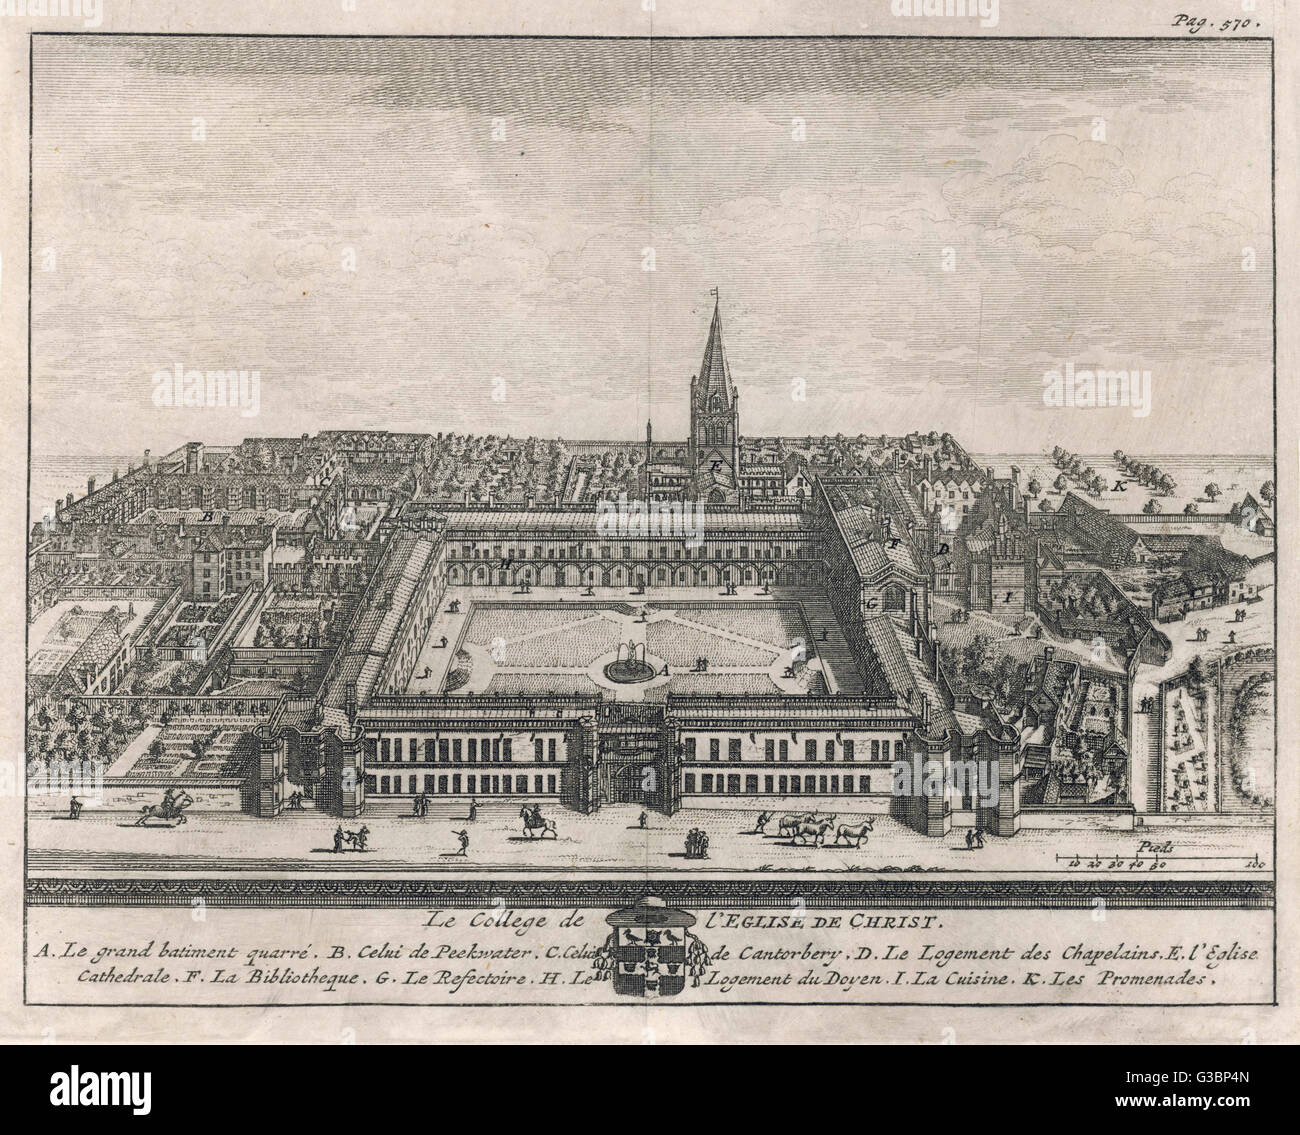 A bird's-eye view of the college showing Tom Quad, Peckwater  Quad, Cathedral Church,  Chaplain's lodgings, - Stock Image